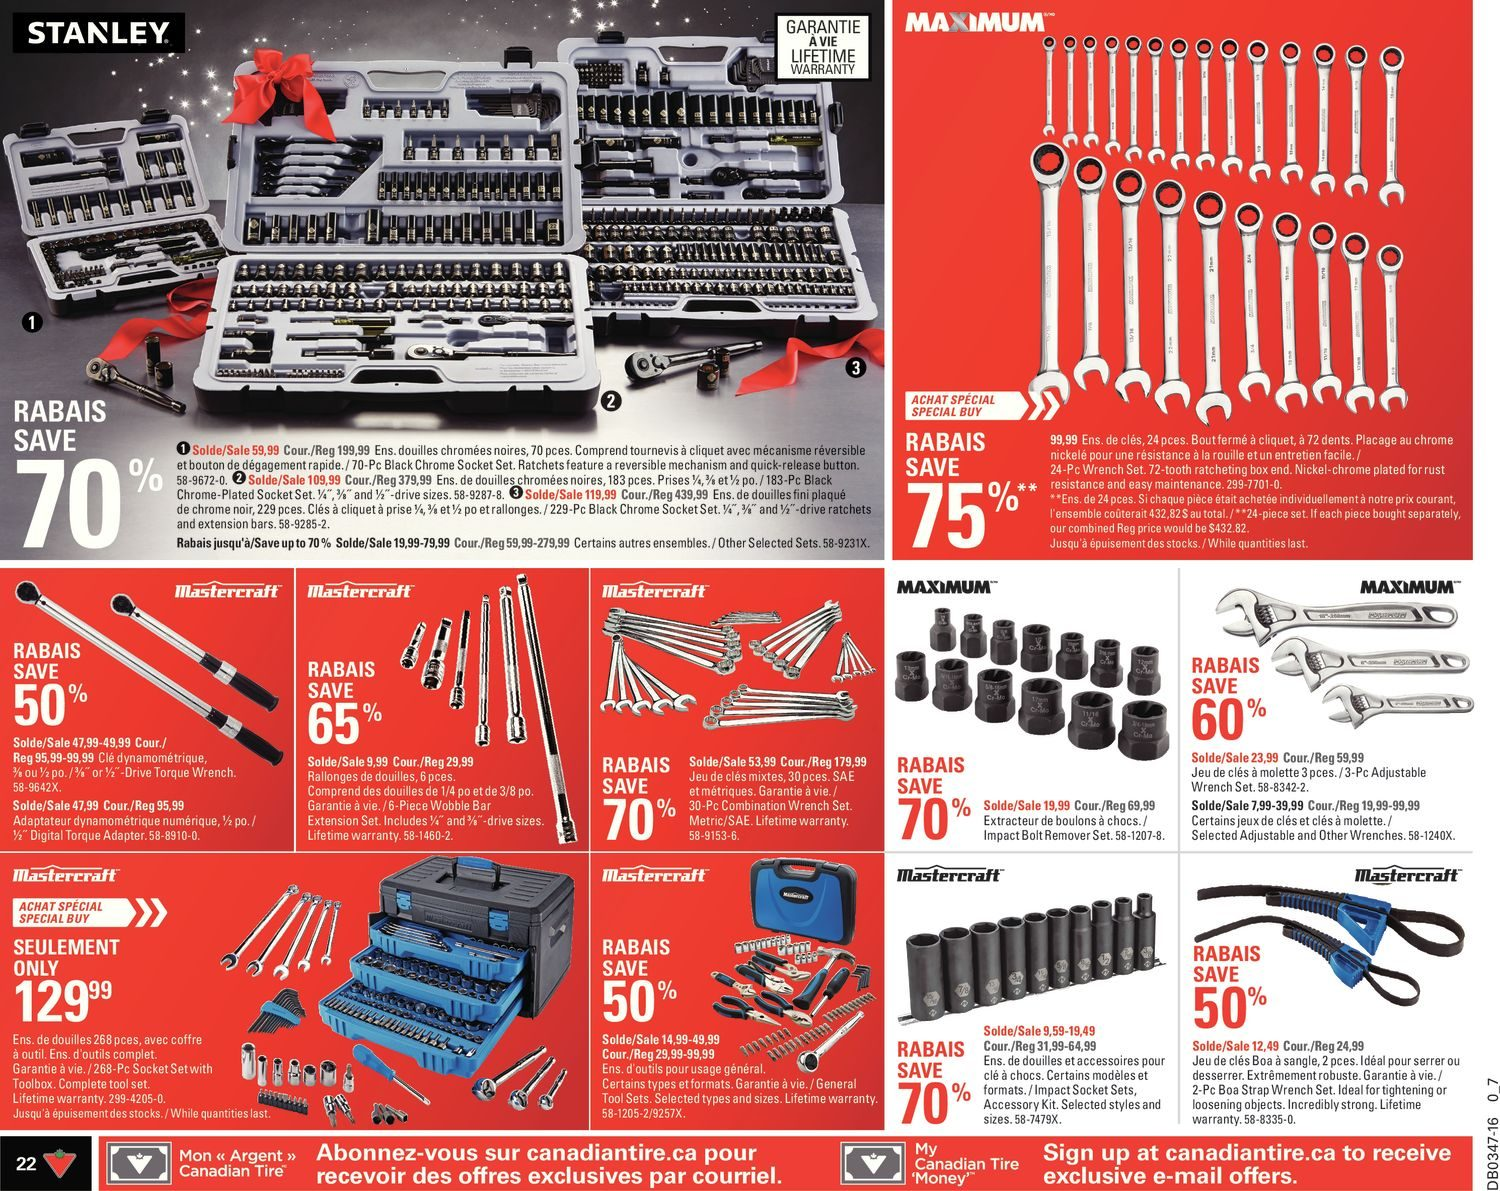 Canadian Tire Weekly Flyer Make It Festive Nov 18 24 Reliant Single Handle Kitchen Faucet Diagram Of Parts For Models 4205